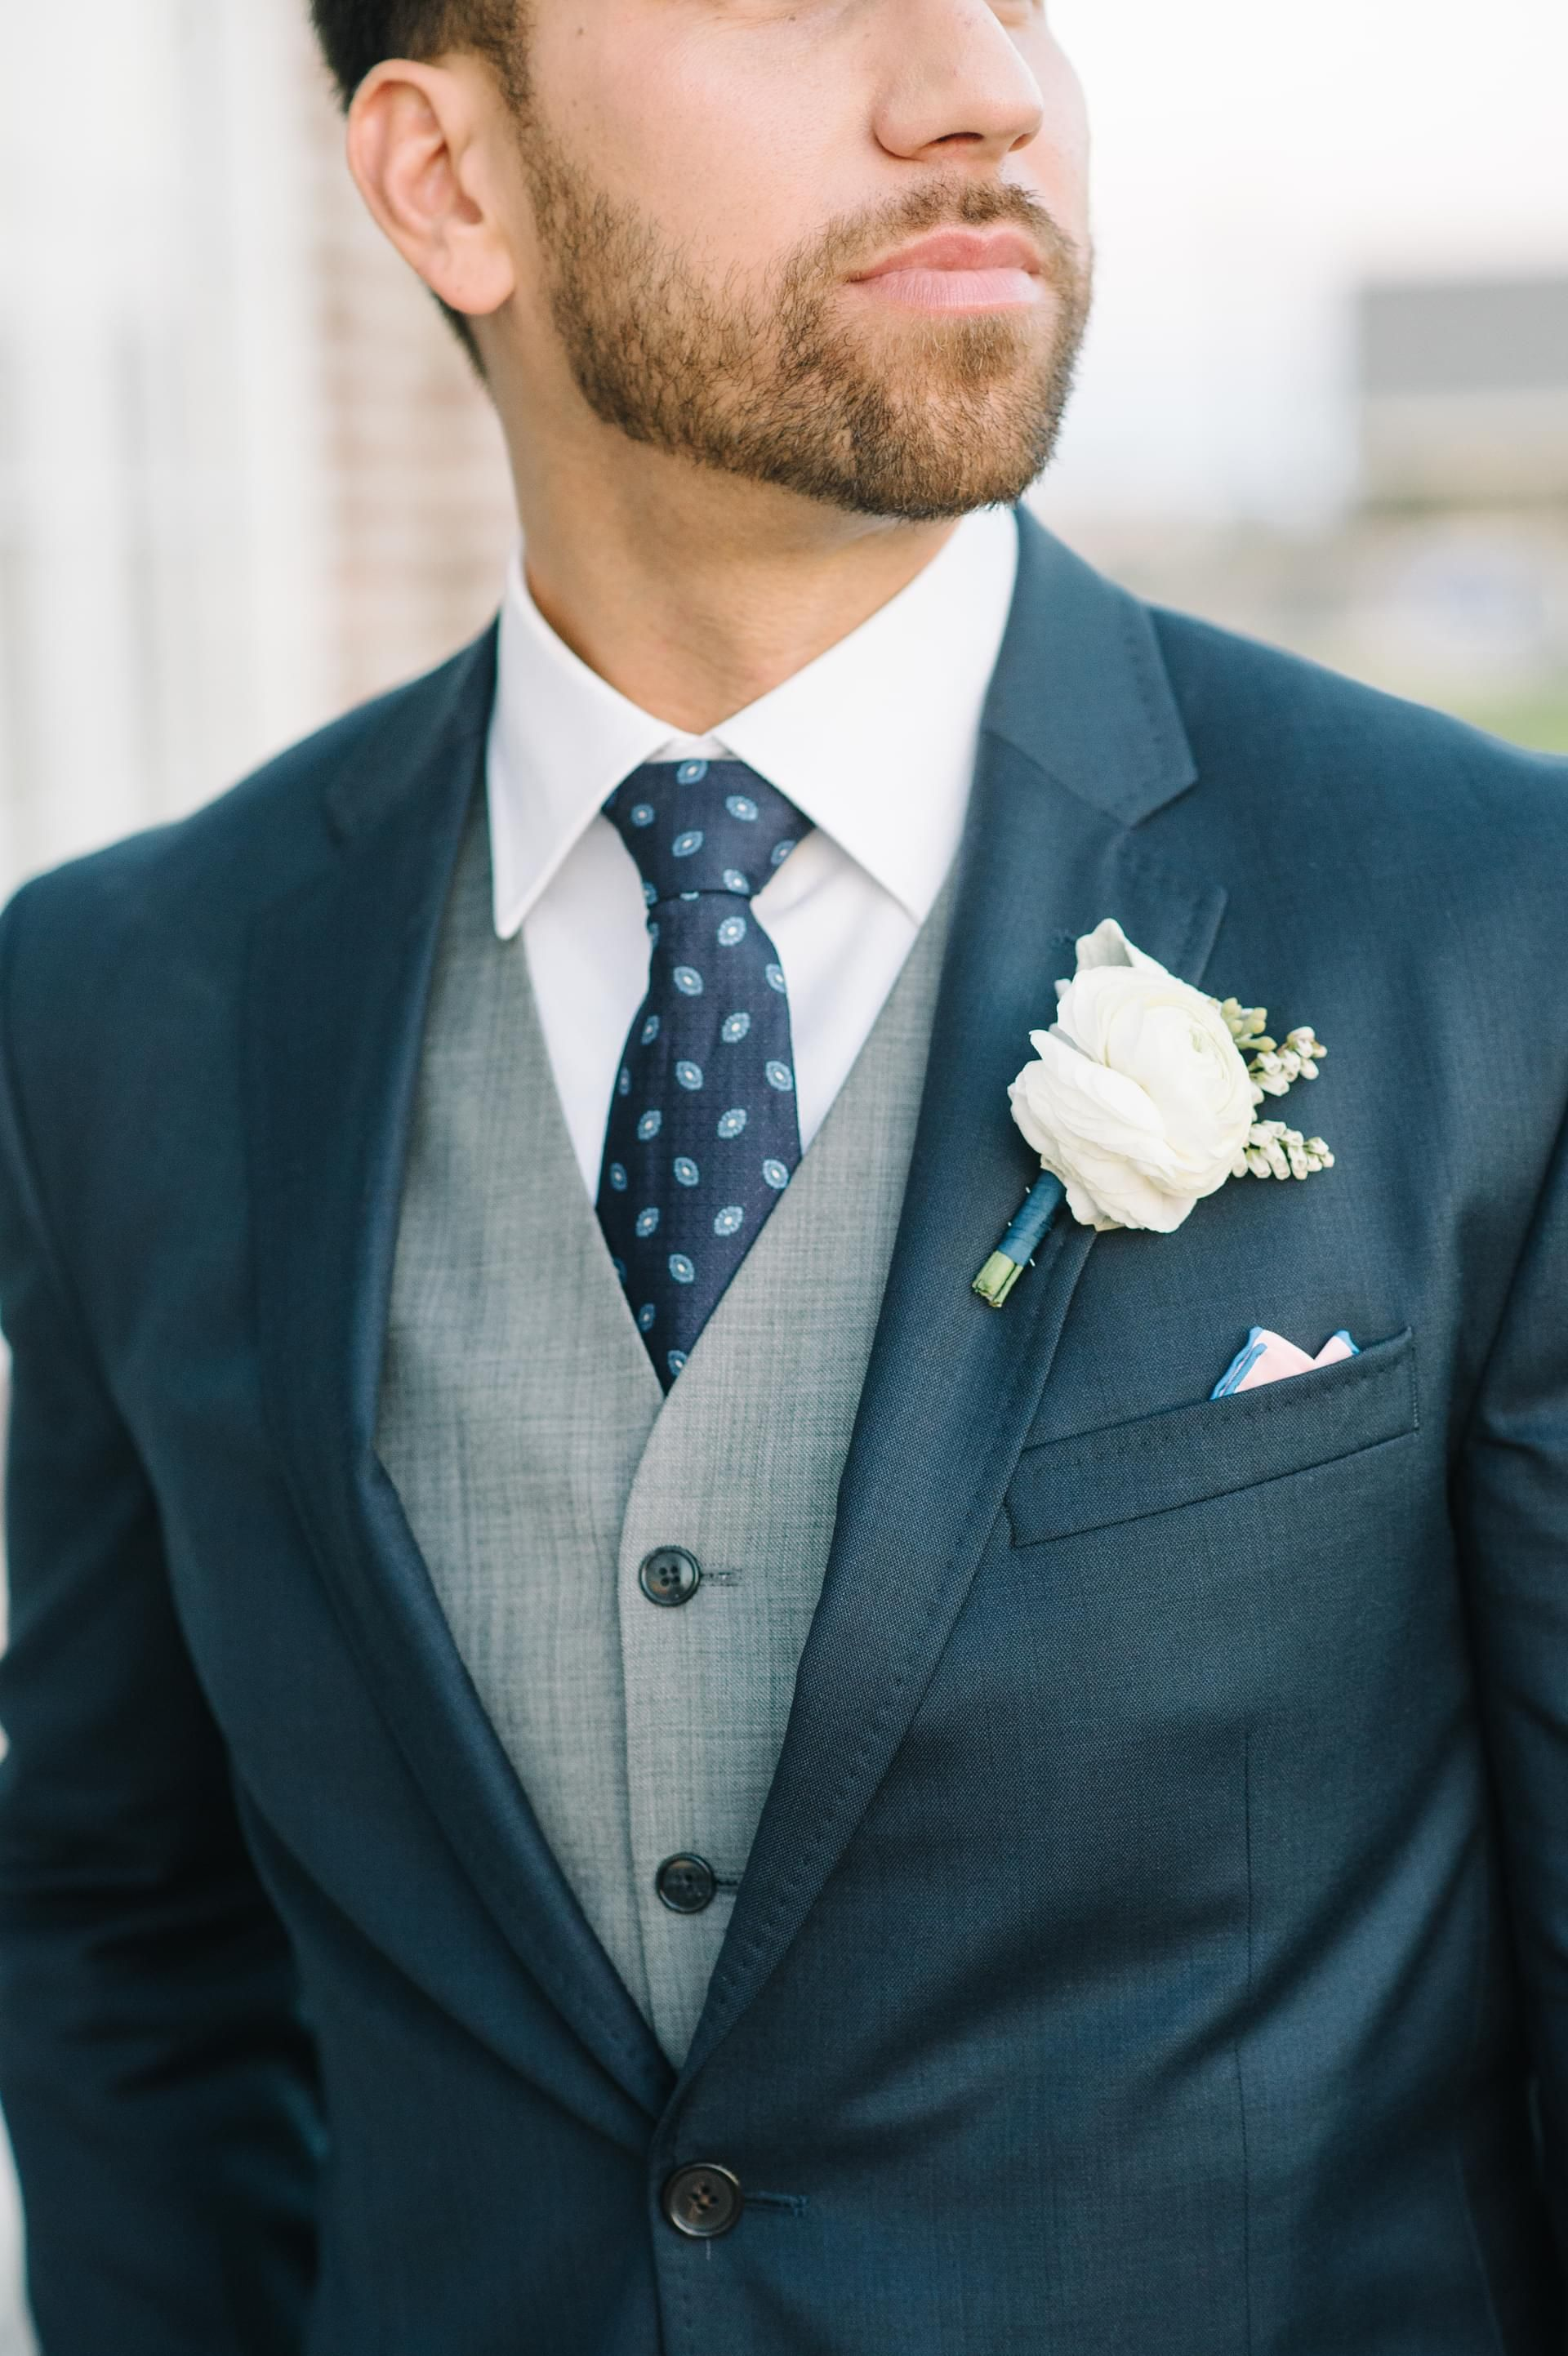 The Smarter Way to Wed | White boutonniere, Boutonnieres and Navy